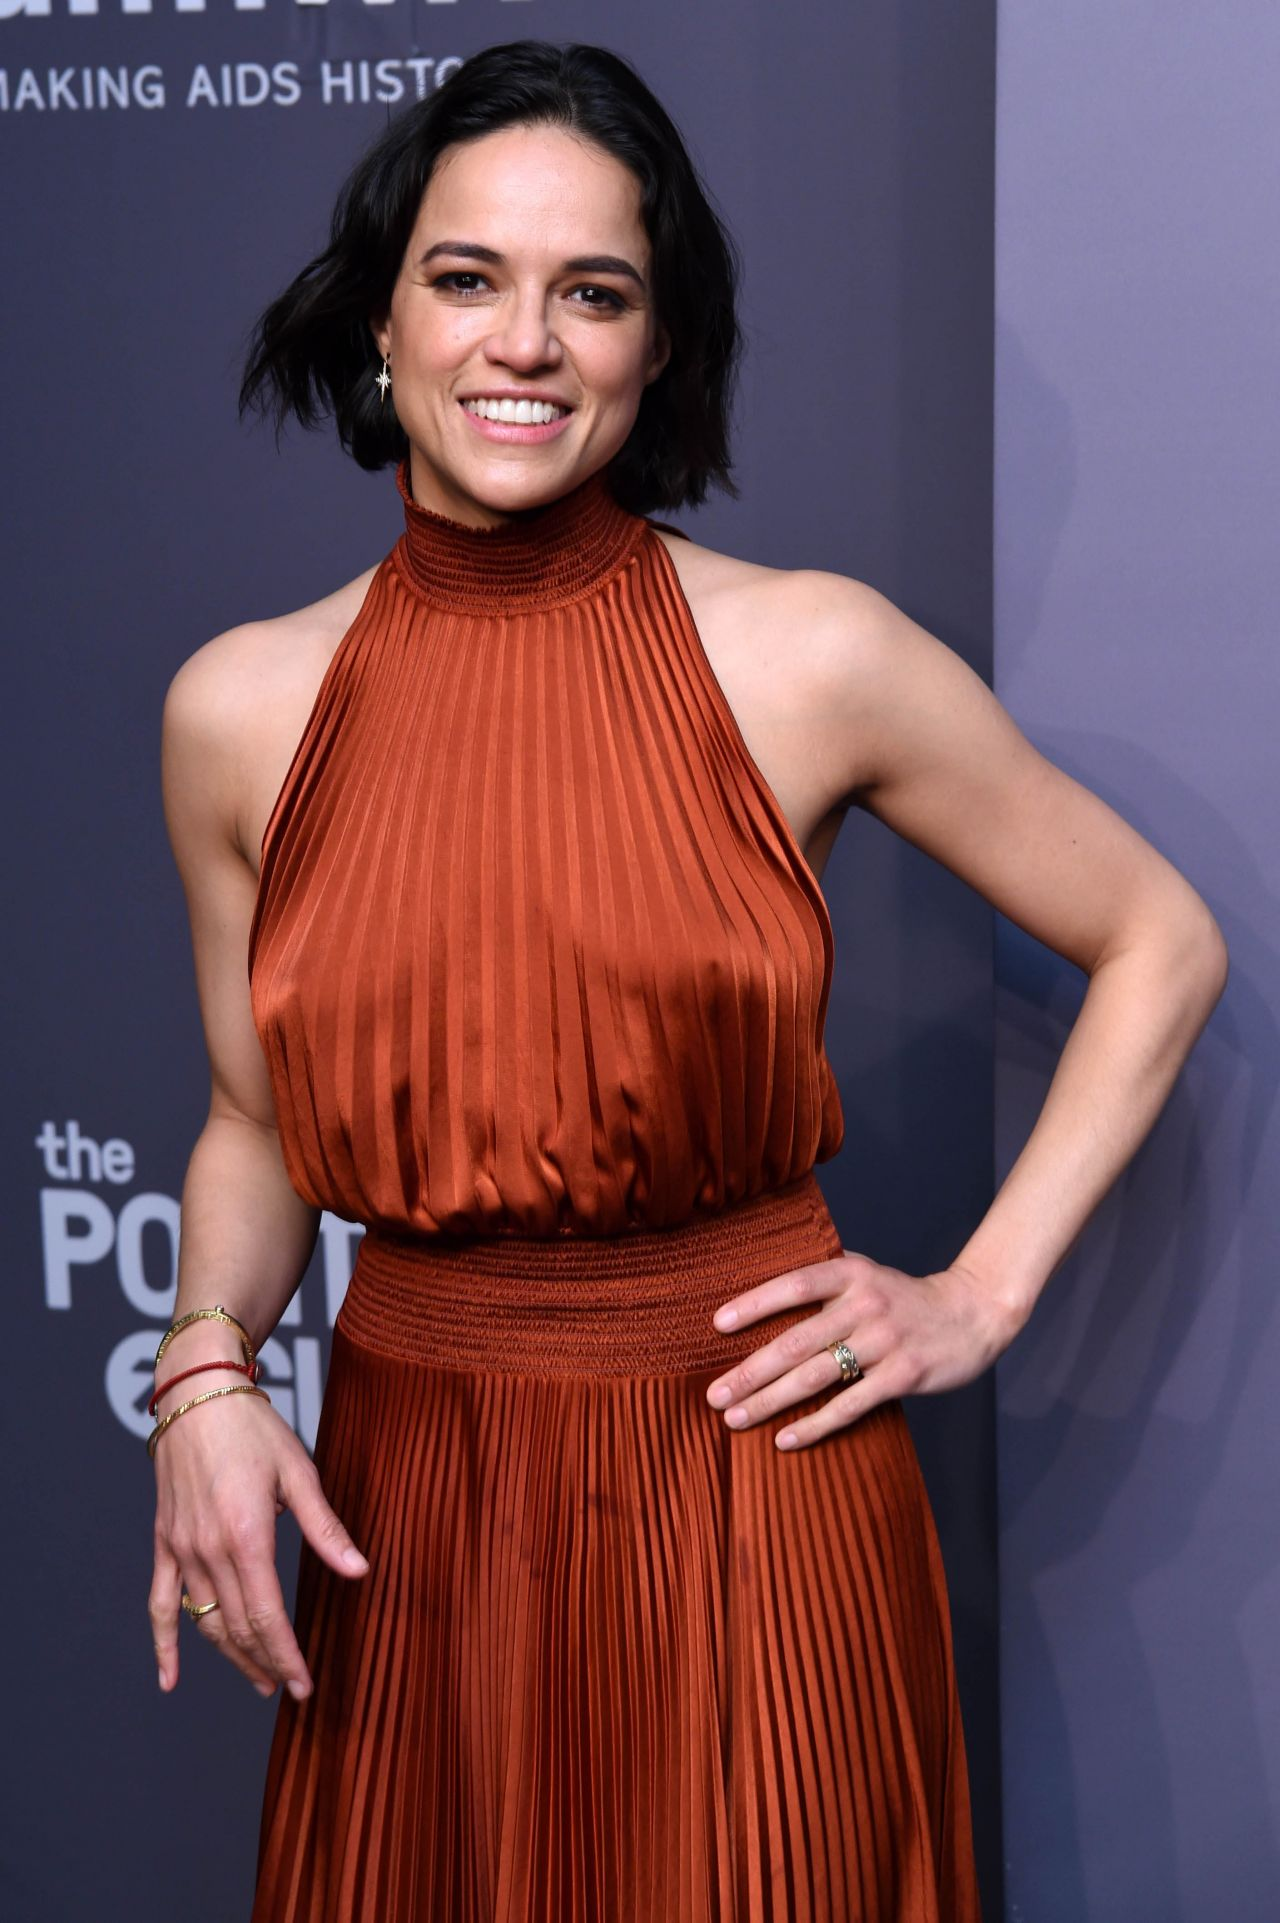 https://celebmafia.com/wp-content/uploads/2019/02/michelle-rodriguez-2019-amfar-gala-in-new-york-7.jpg